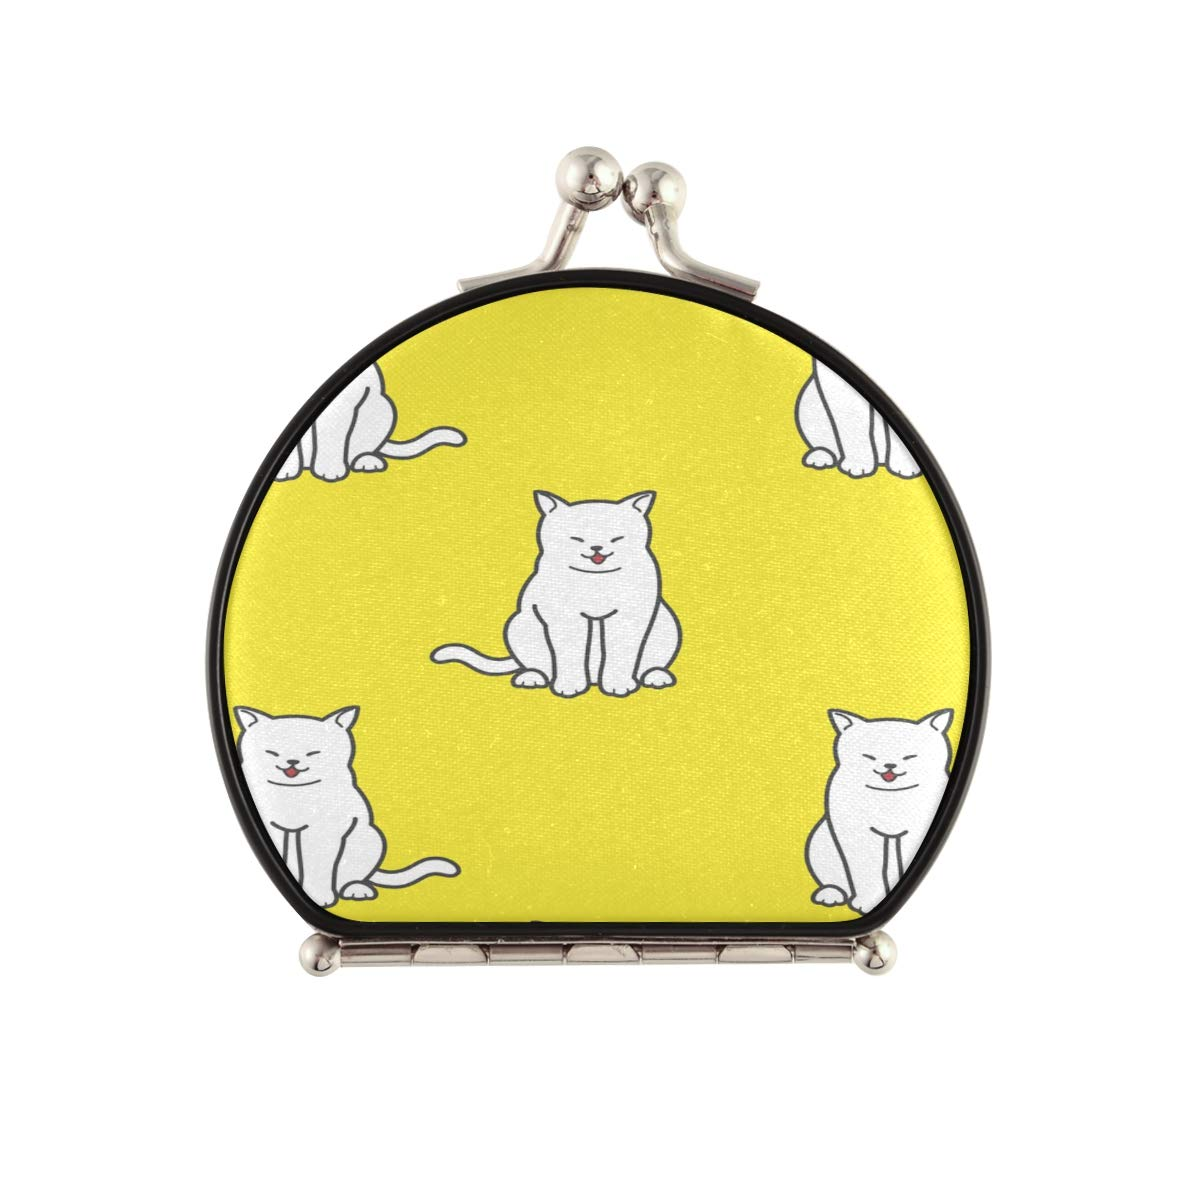 Magnifying Overseas parallel import regular item Compact Cosmetic Mirror Cat Yellow Pock Fresno Mall Pattern Happy